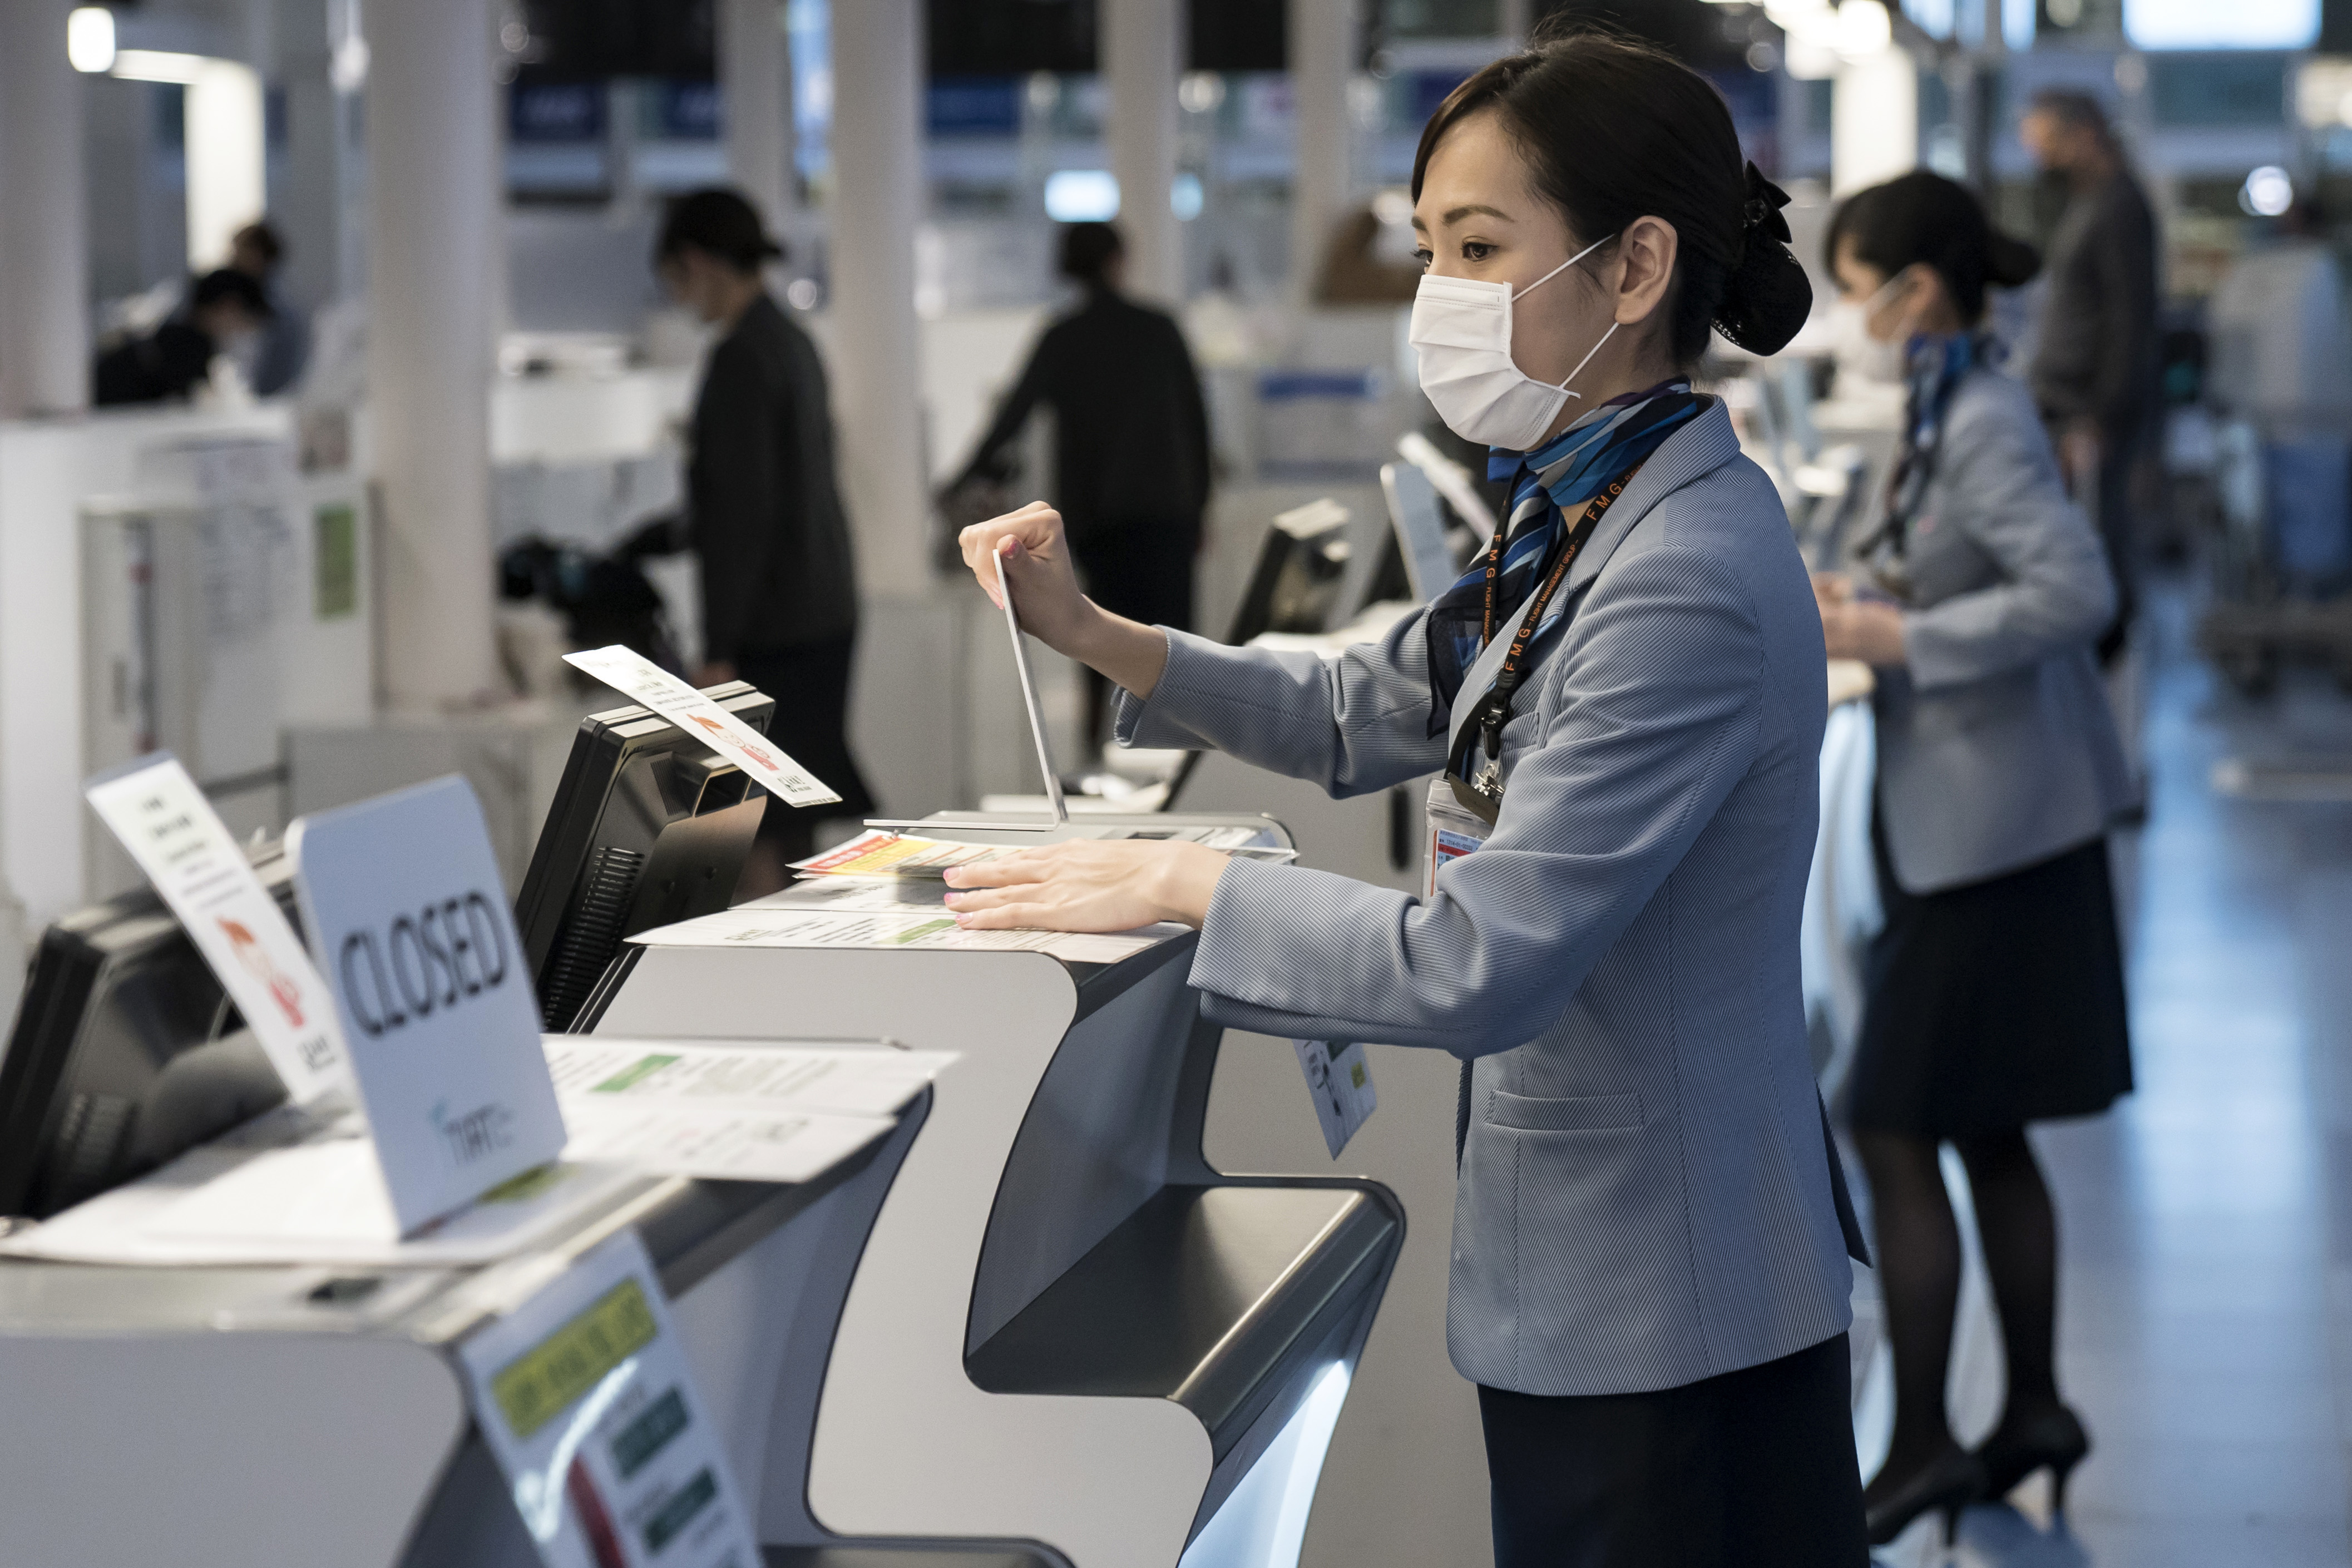 Airline staff at Haneda Airport on January 31, 2020 in Tokyo, Japan.